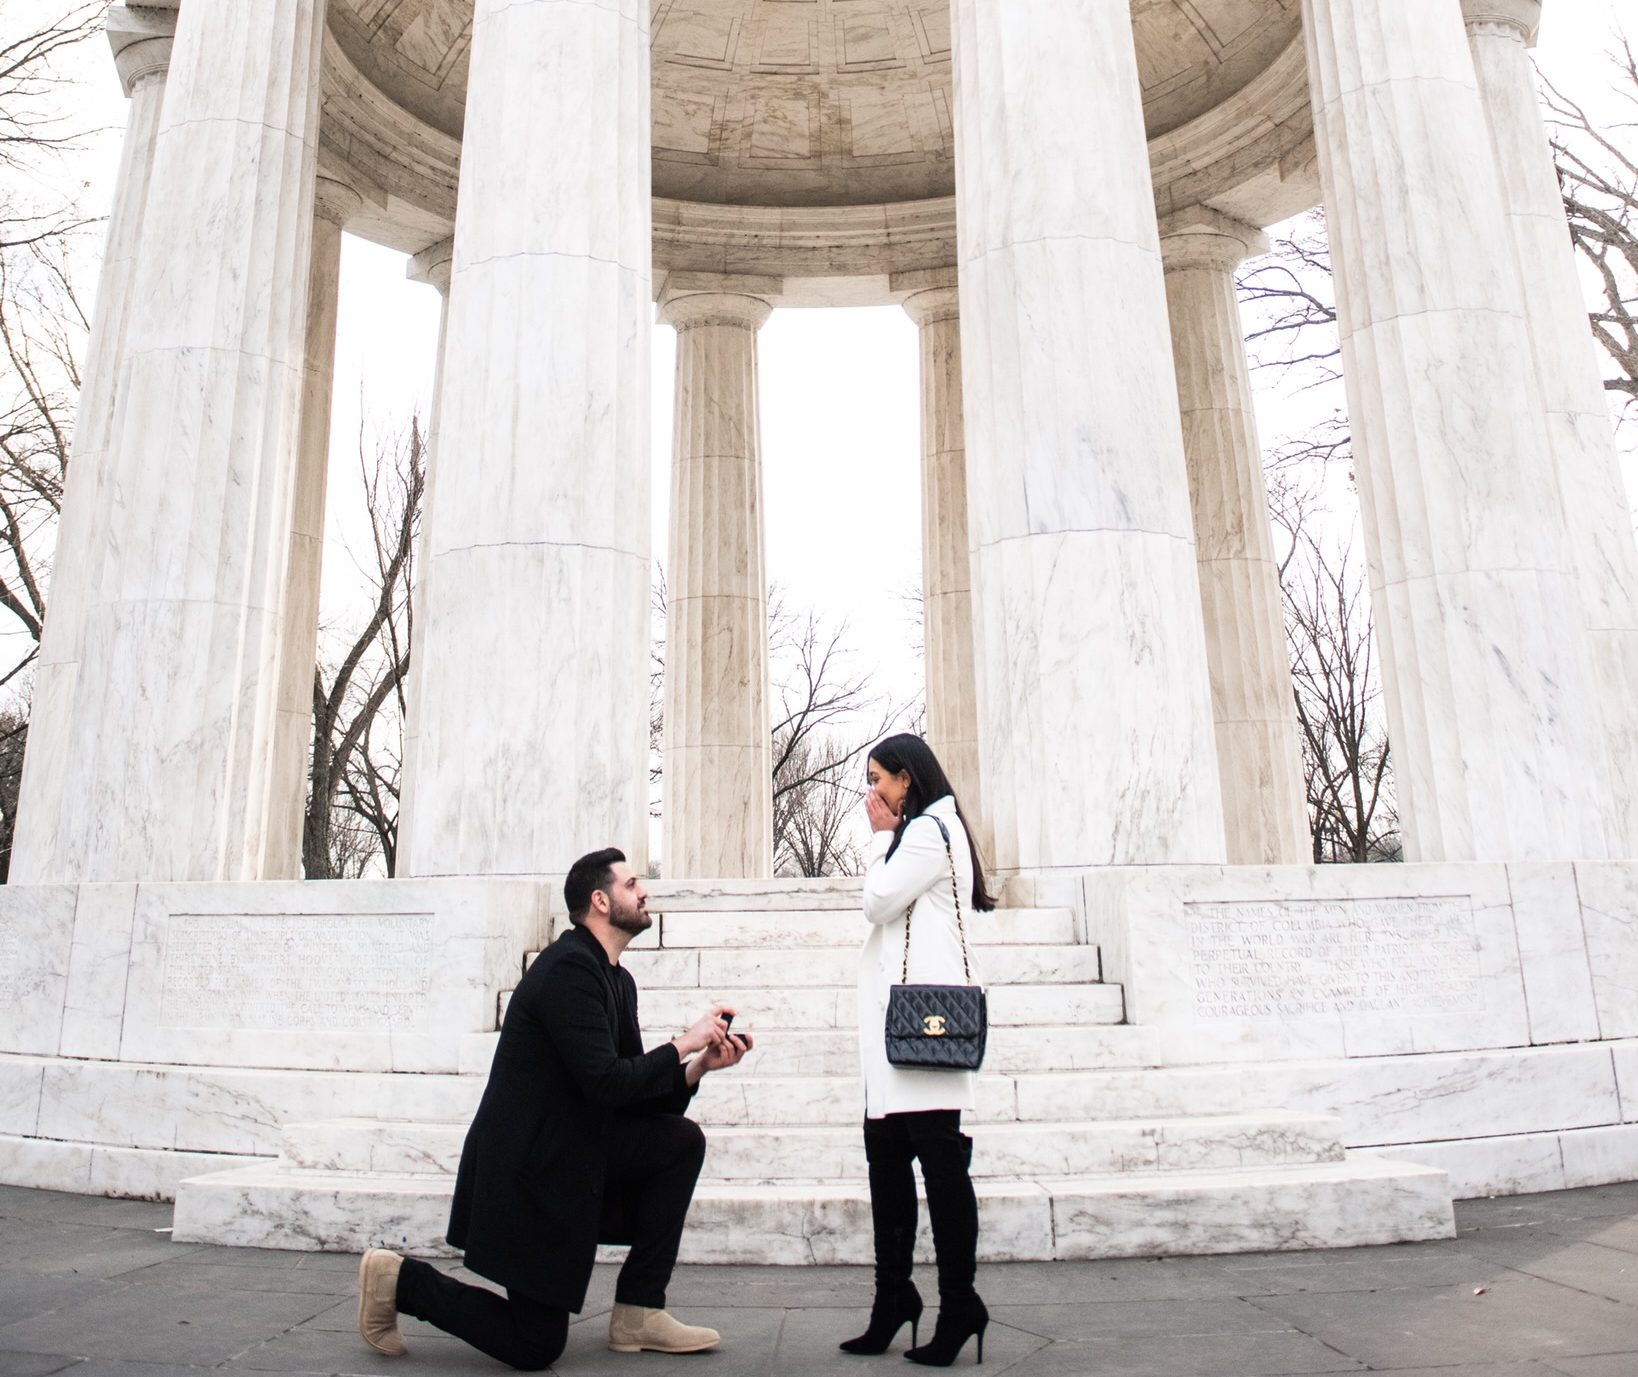 Engagement Proposal Ideas in Washington, D.C.